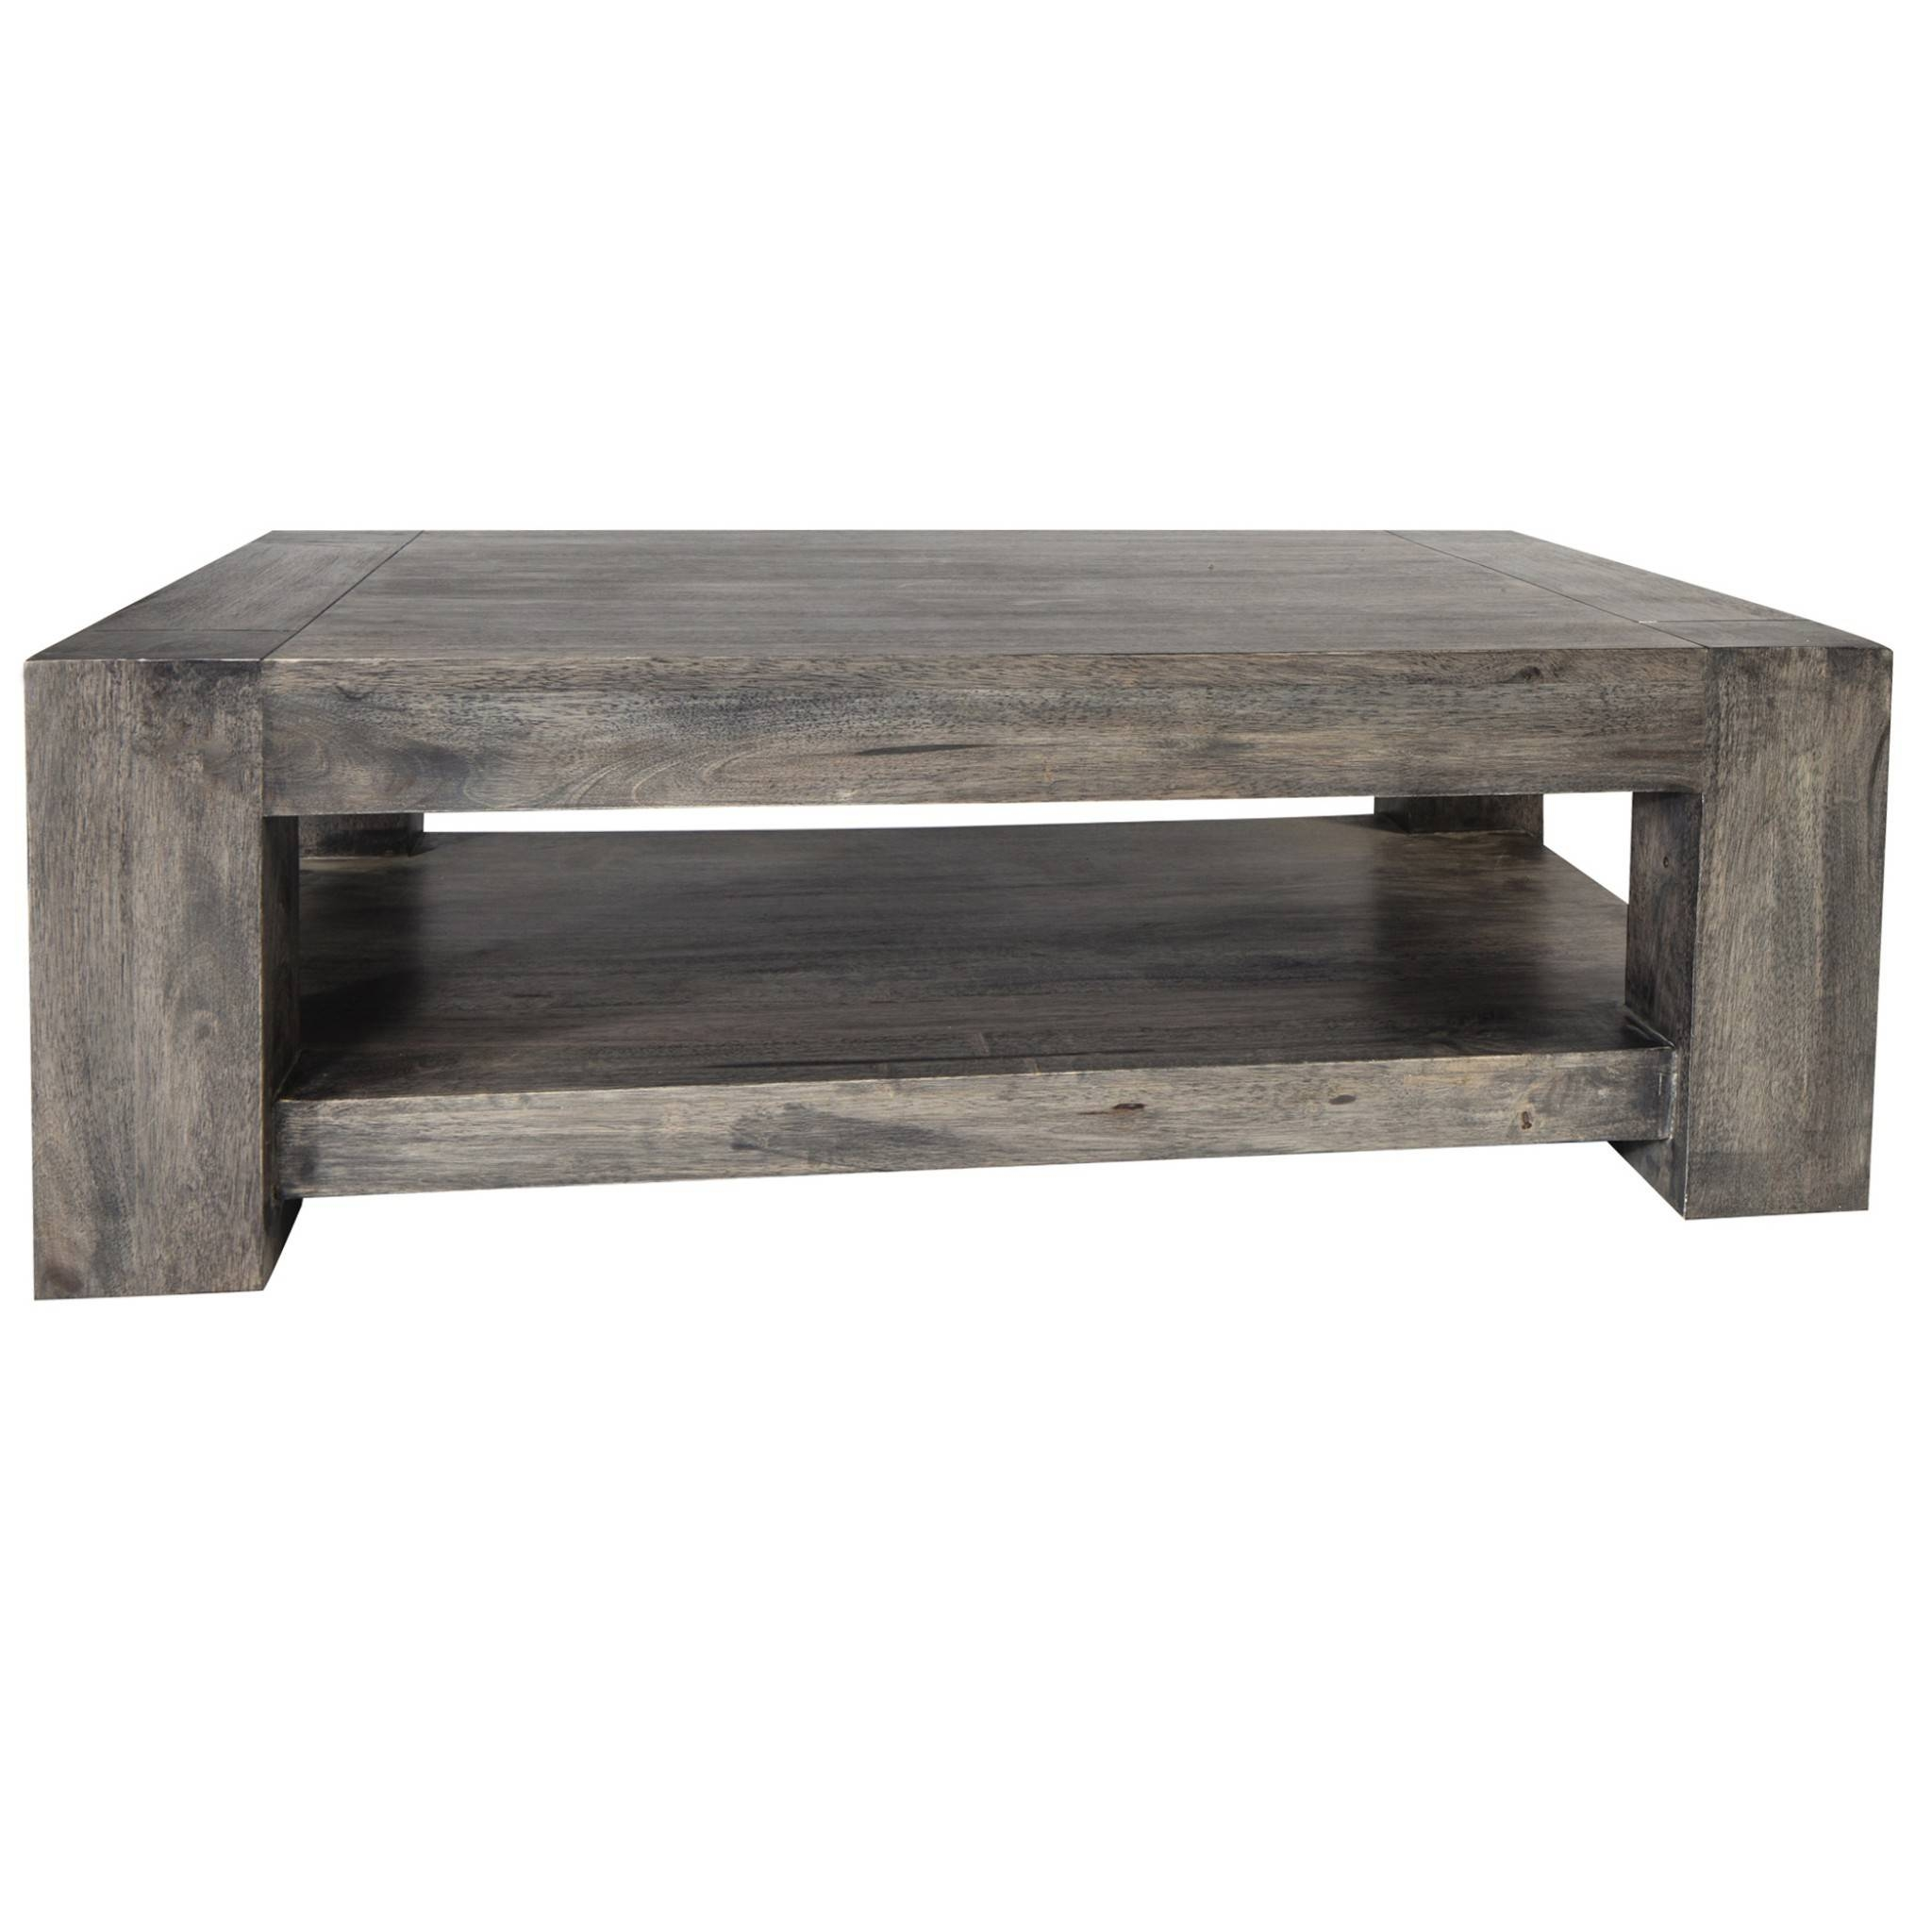 Square Wood Coffee Tables - Jericho Mafjar Project with Cheap Coffee Tables With Storage (Image 28 of 30)